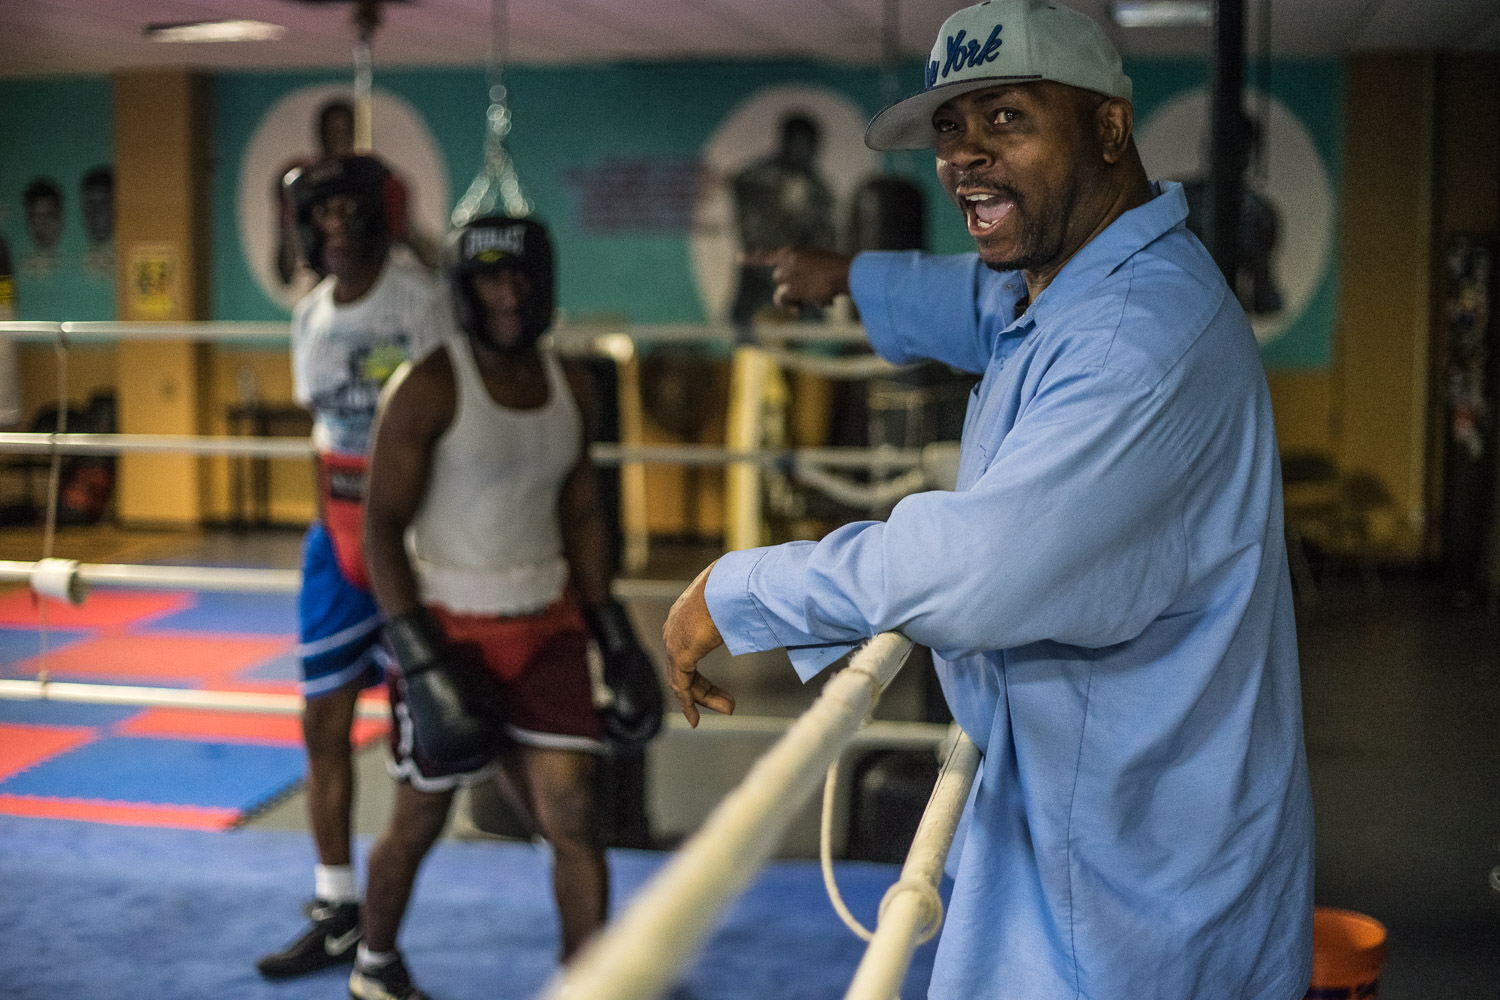 """""""You wanna be beaten by a cop?"""", shouts Nate Boyd as he encourages Shakka to get closer to a police officer with the New York City Police Department (NYPD). NYPD officers use the gym to train for competitions such as 'Battle of the Badges'. This is a way for NYPD to develop relationships with the Bedstuy community, especially with some mistrust among some members of the community and law enforcement."""